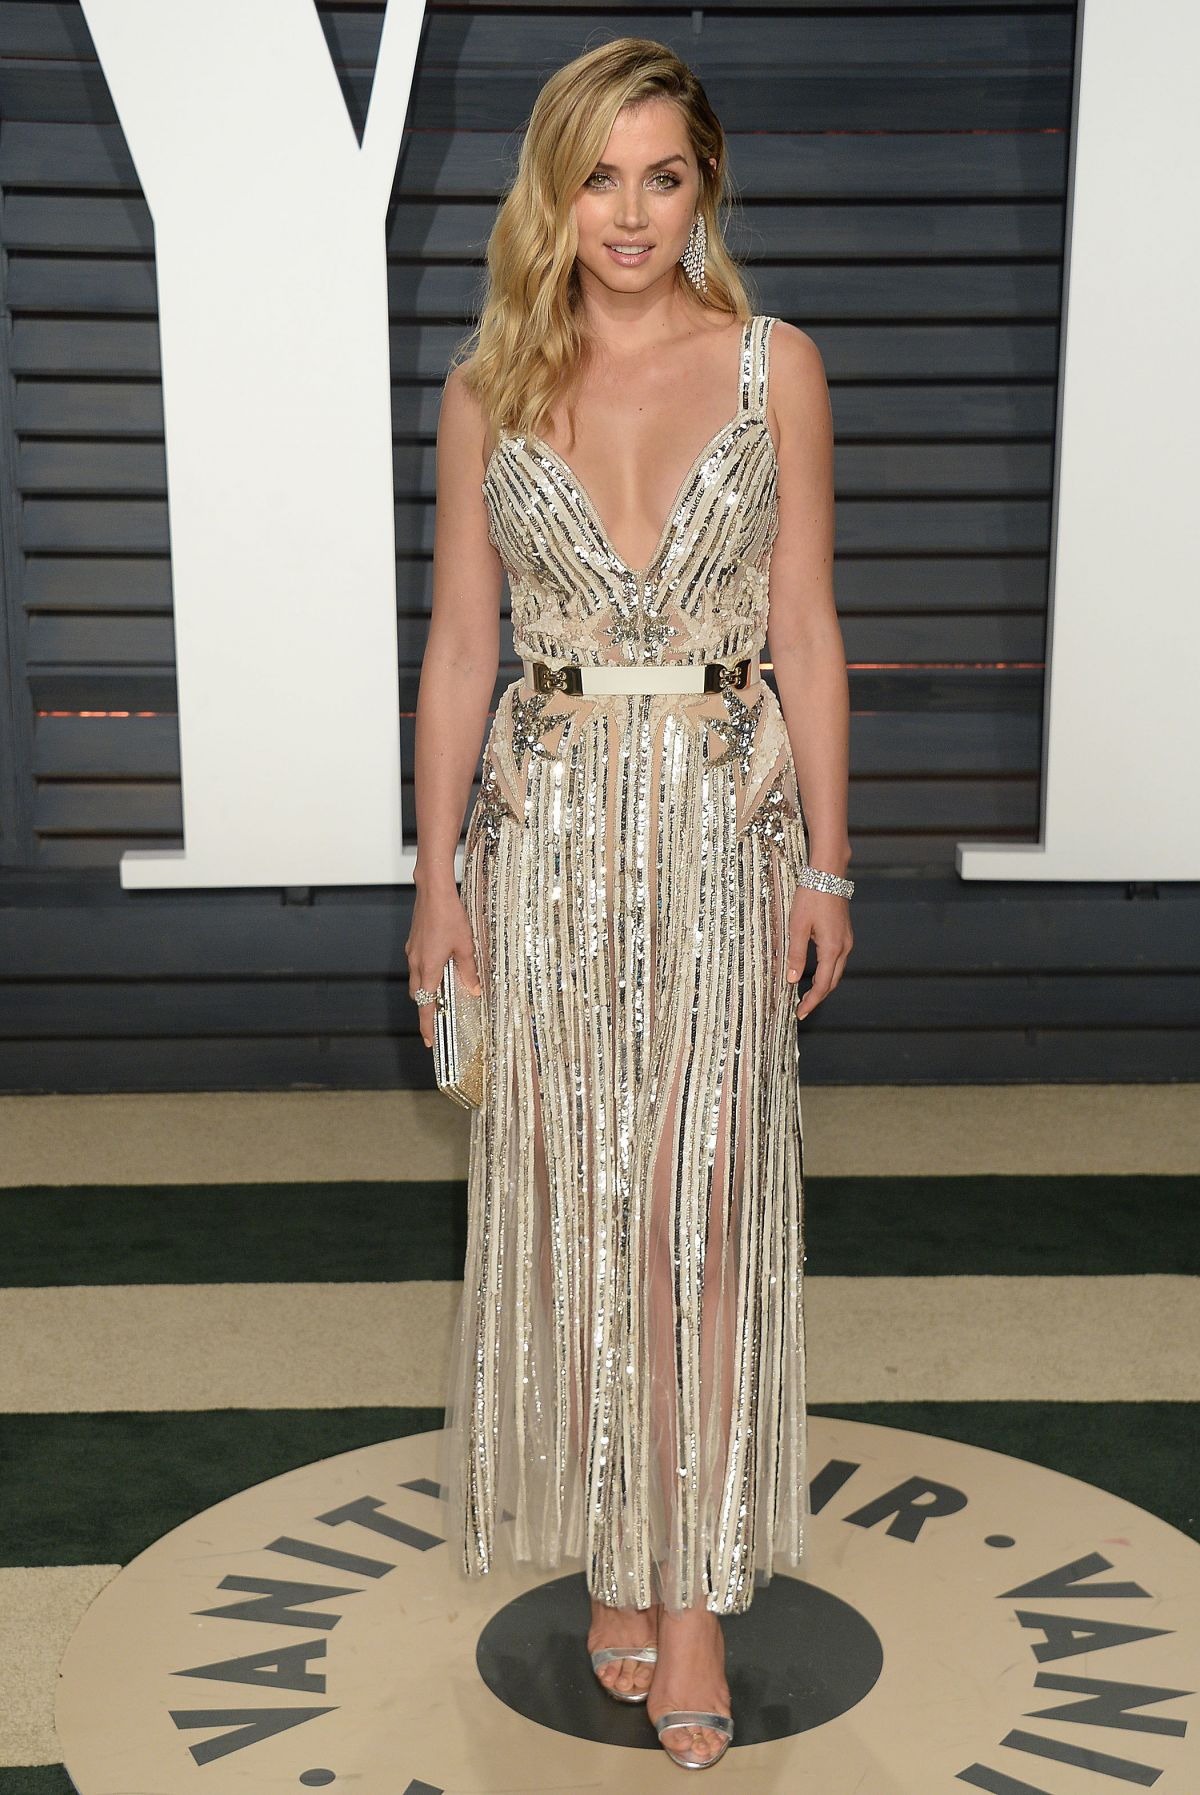 ANA DE ARMAS at 2017 Vanity Fair Oscar Party in Beverly Hills 02/26/